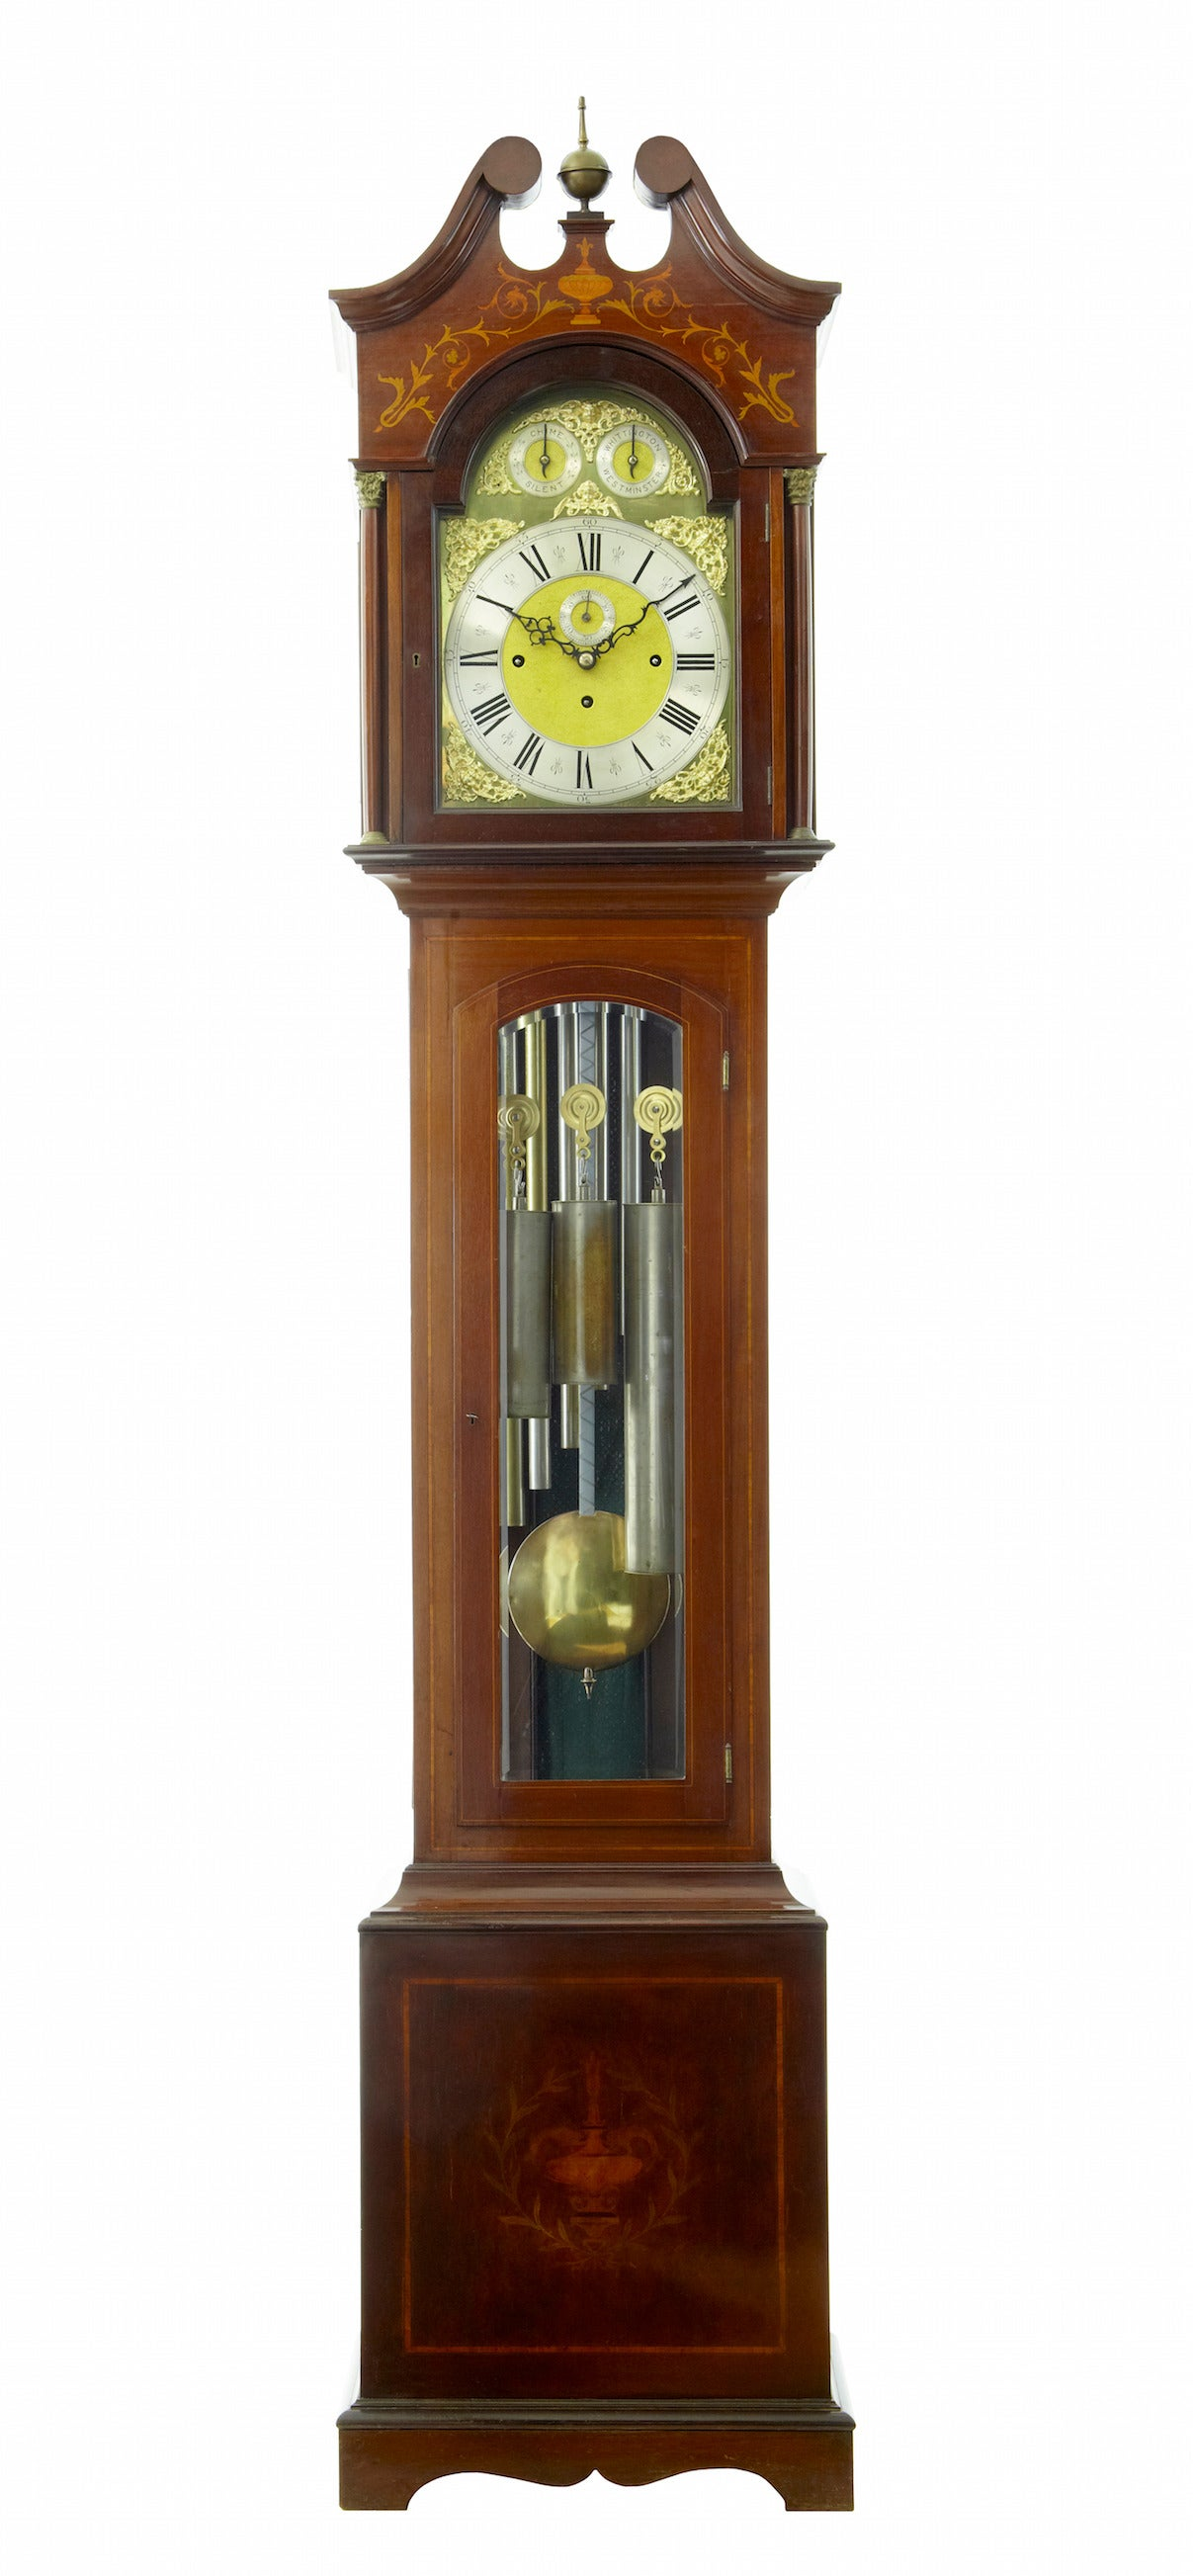 Edwardian Inlaid Mahogany Westminster Chiming Longcase Grandfather Clock at 1stdibs